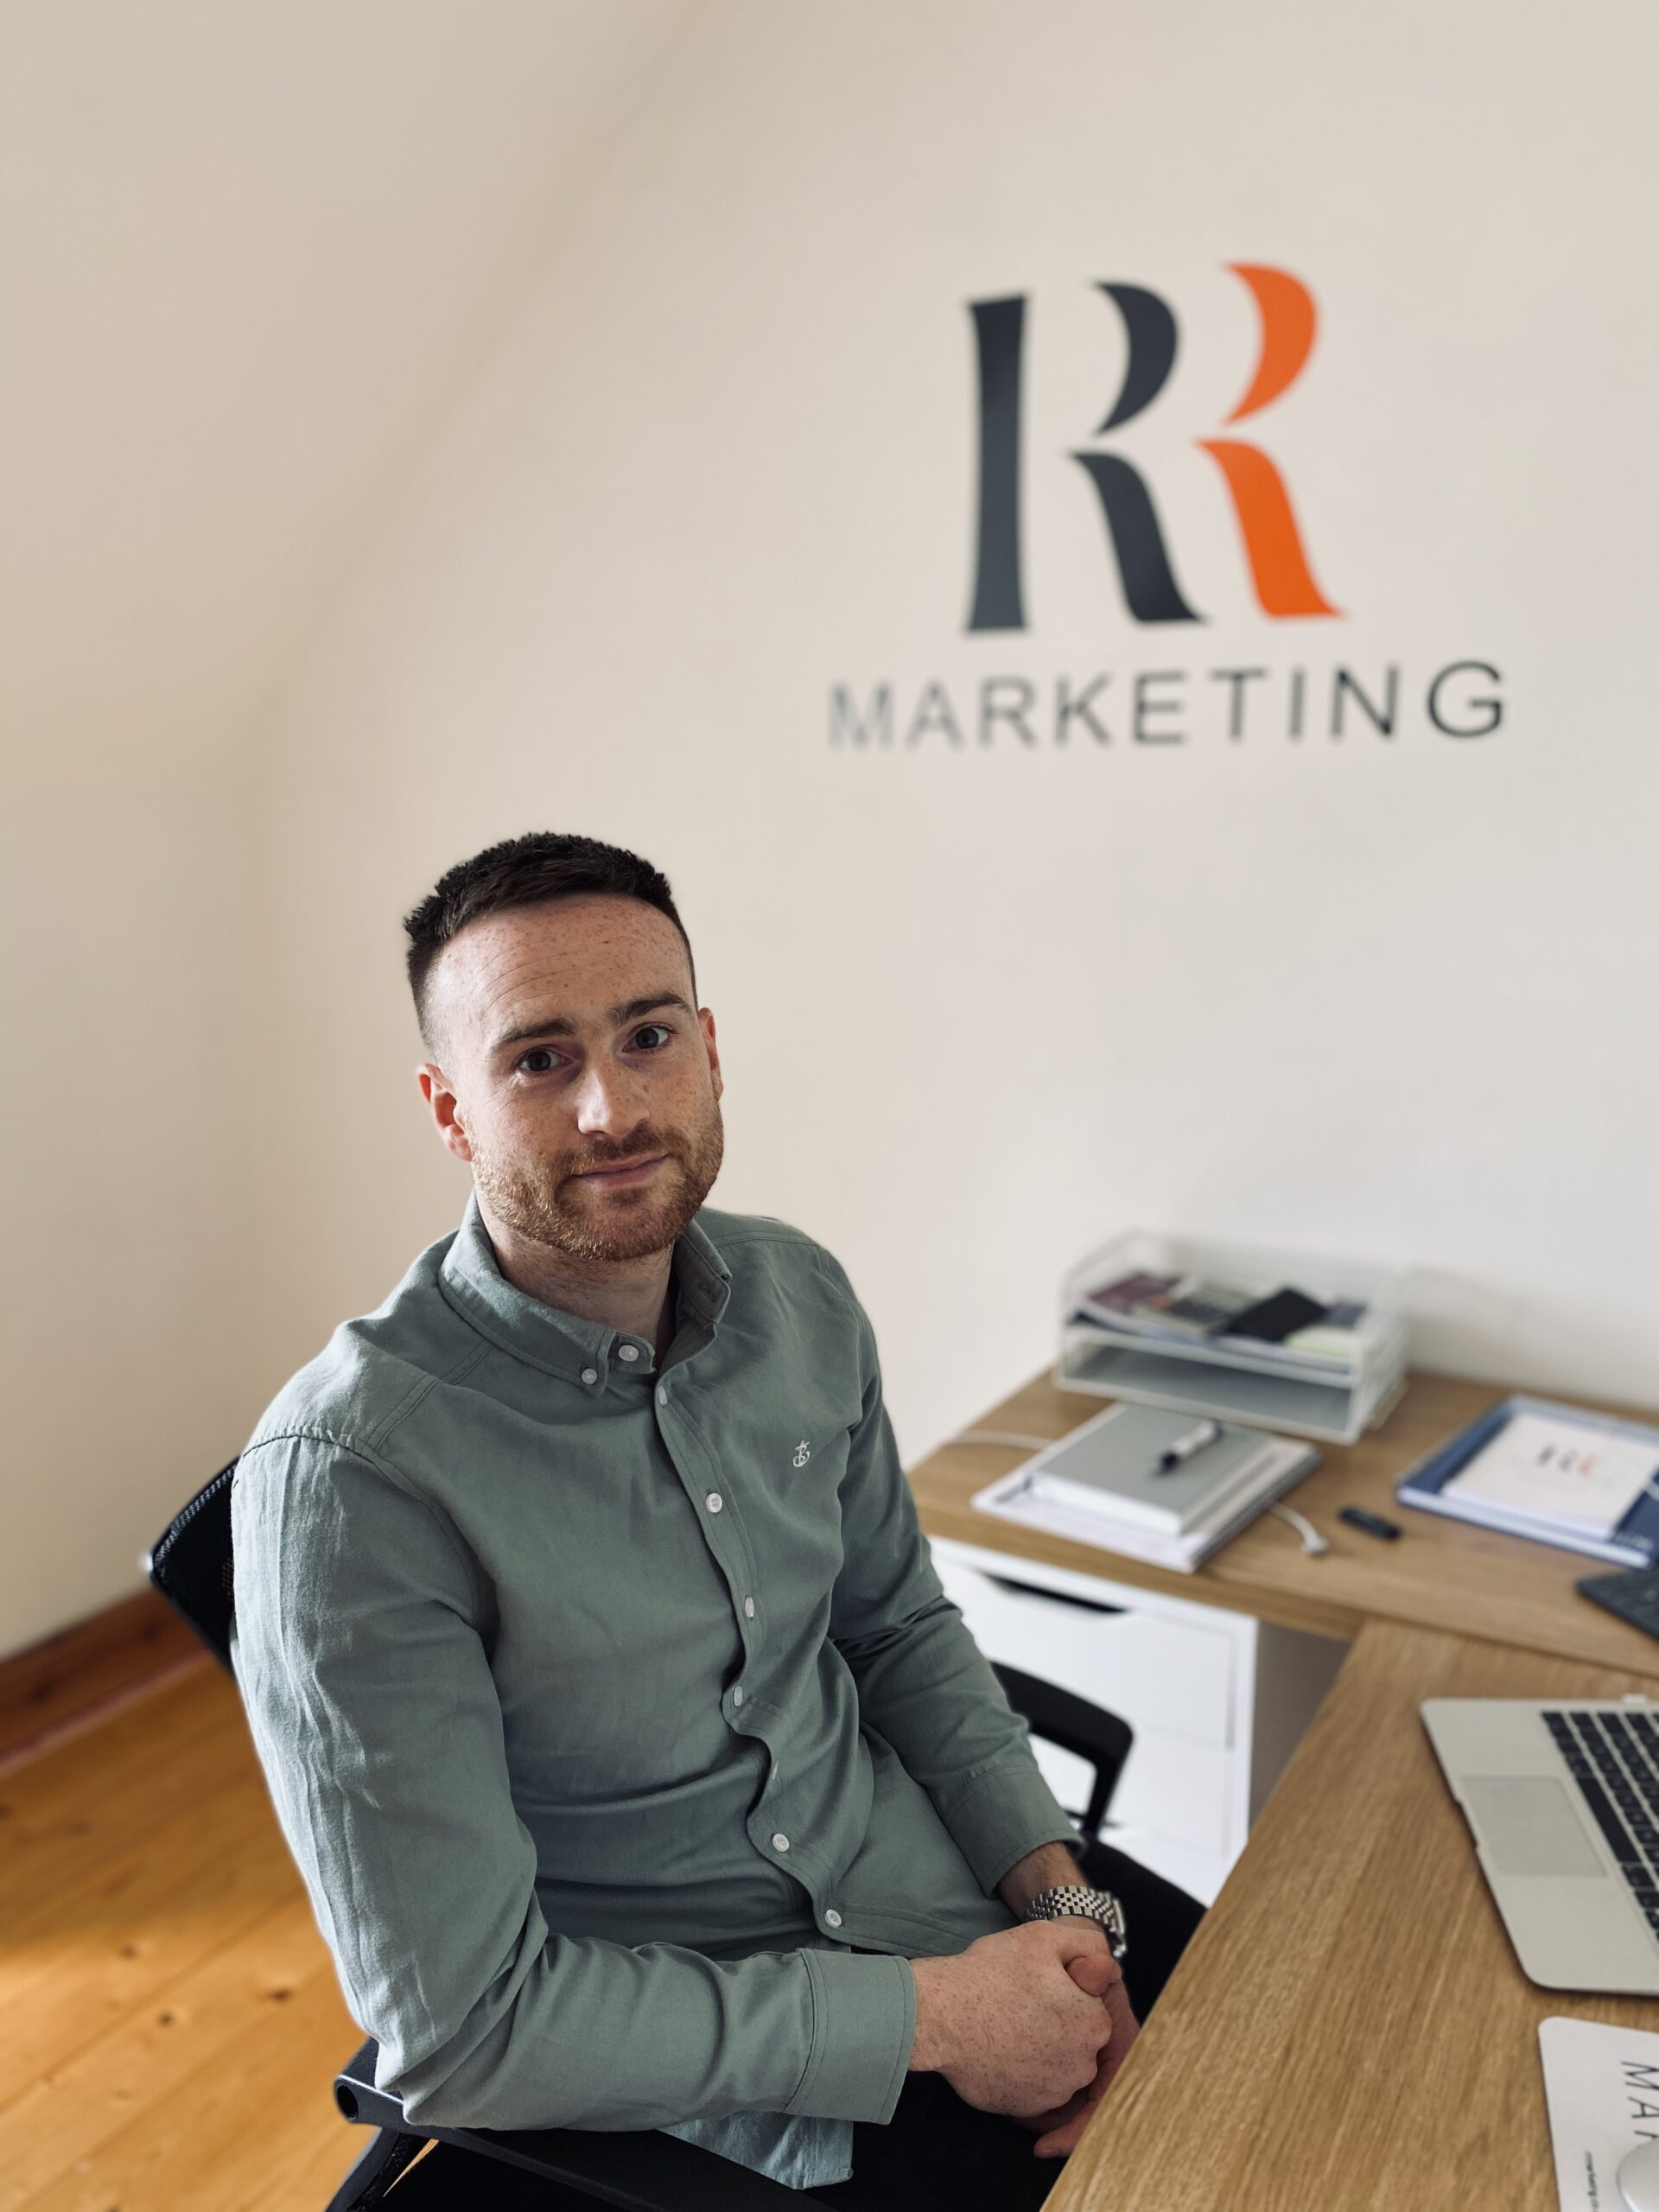 Northern Ireland entrepreneur Richie Reynold, RR Marketing - Content Writing Northern Ireland - NI Copywriter Paul Malone - Freelance Writer Belfast